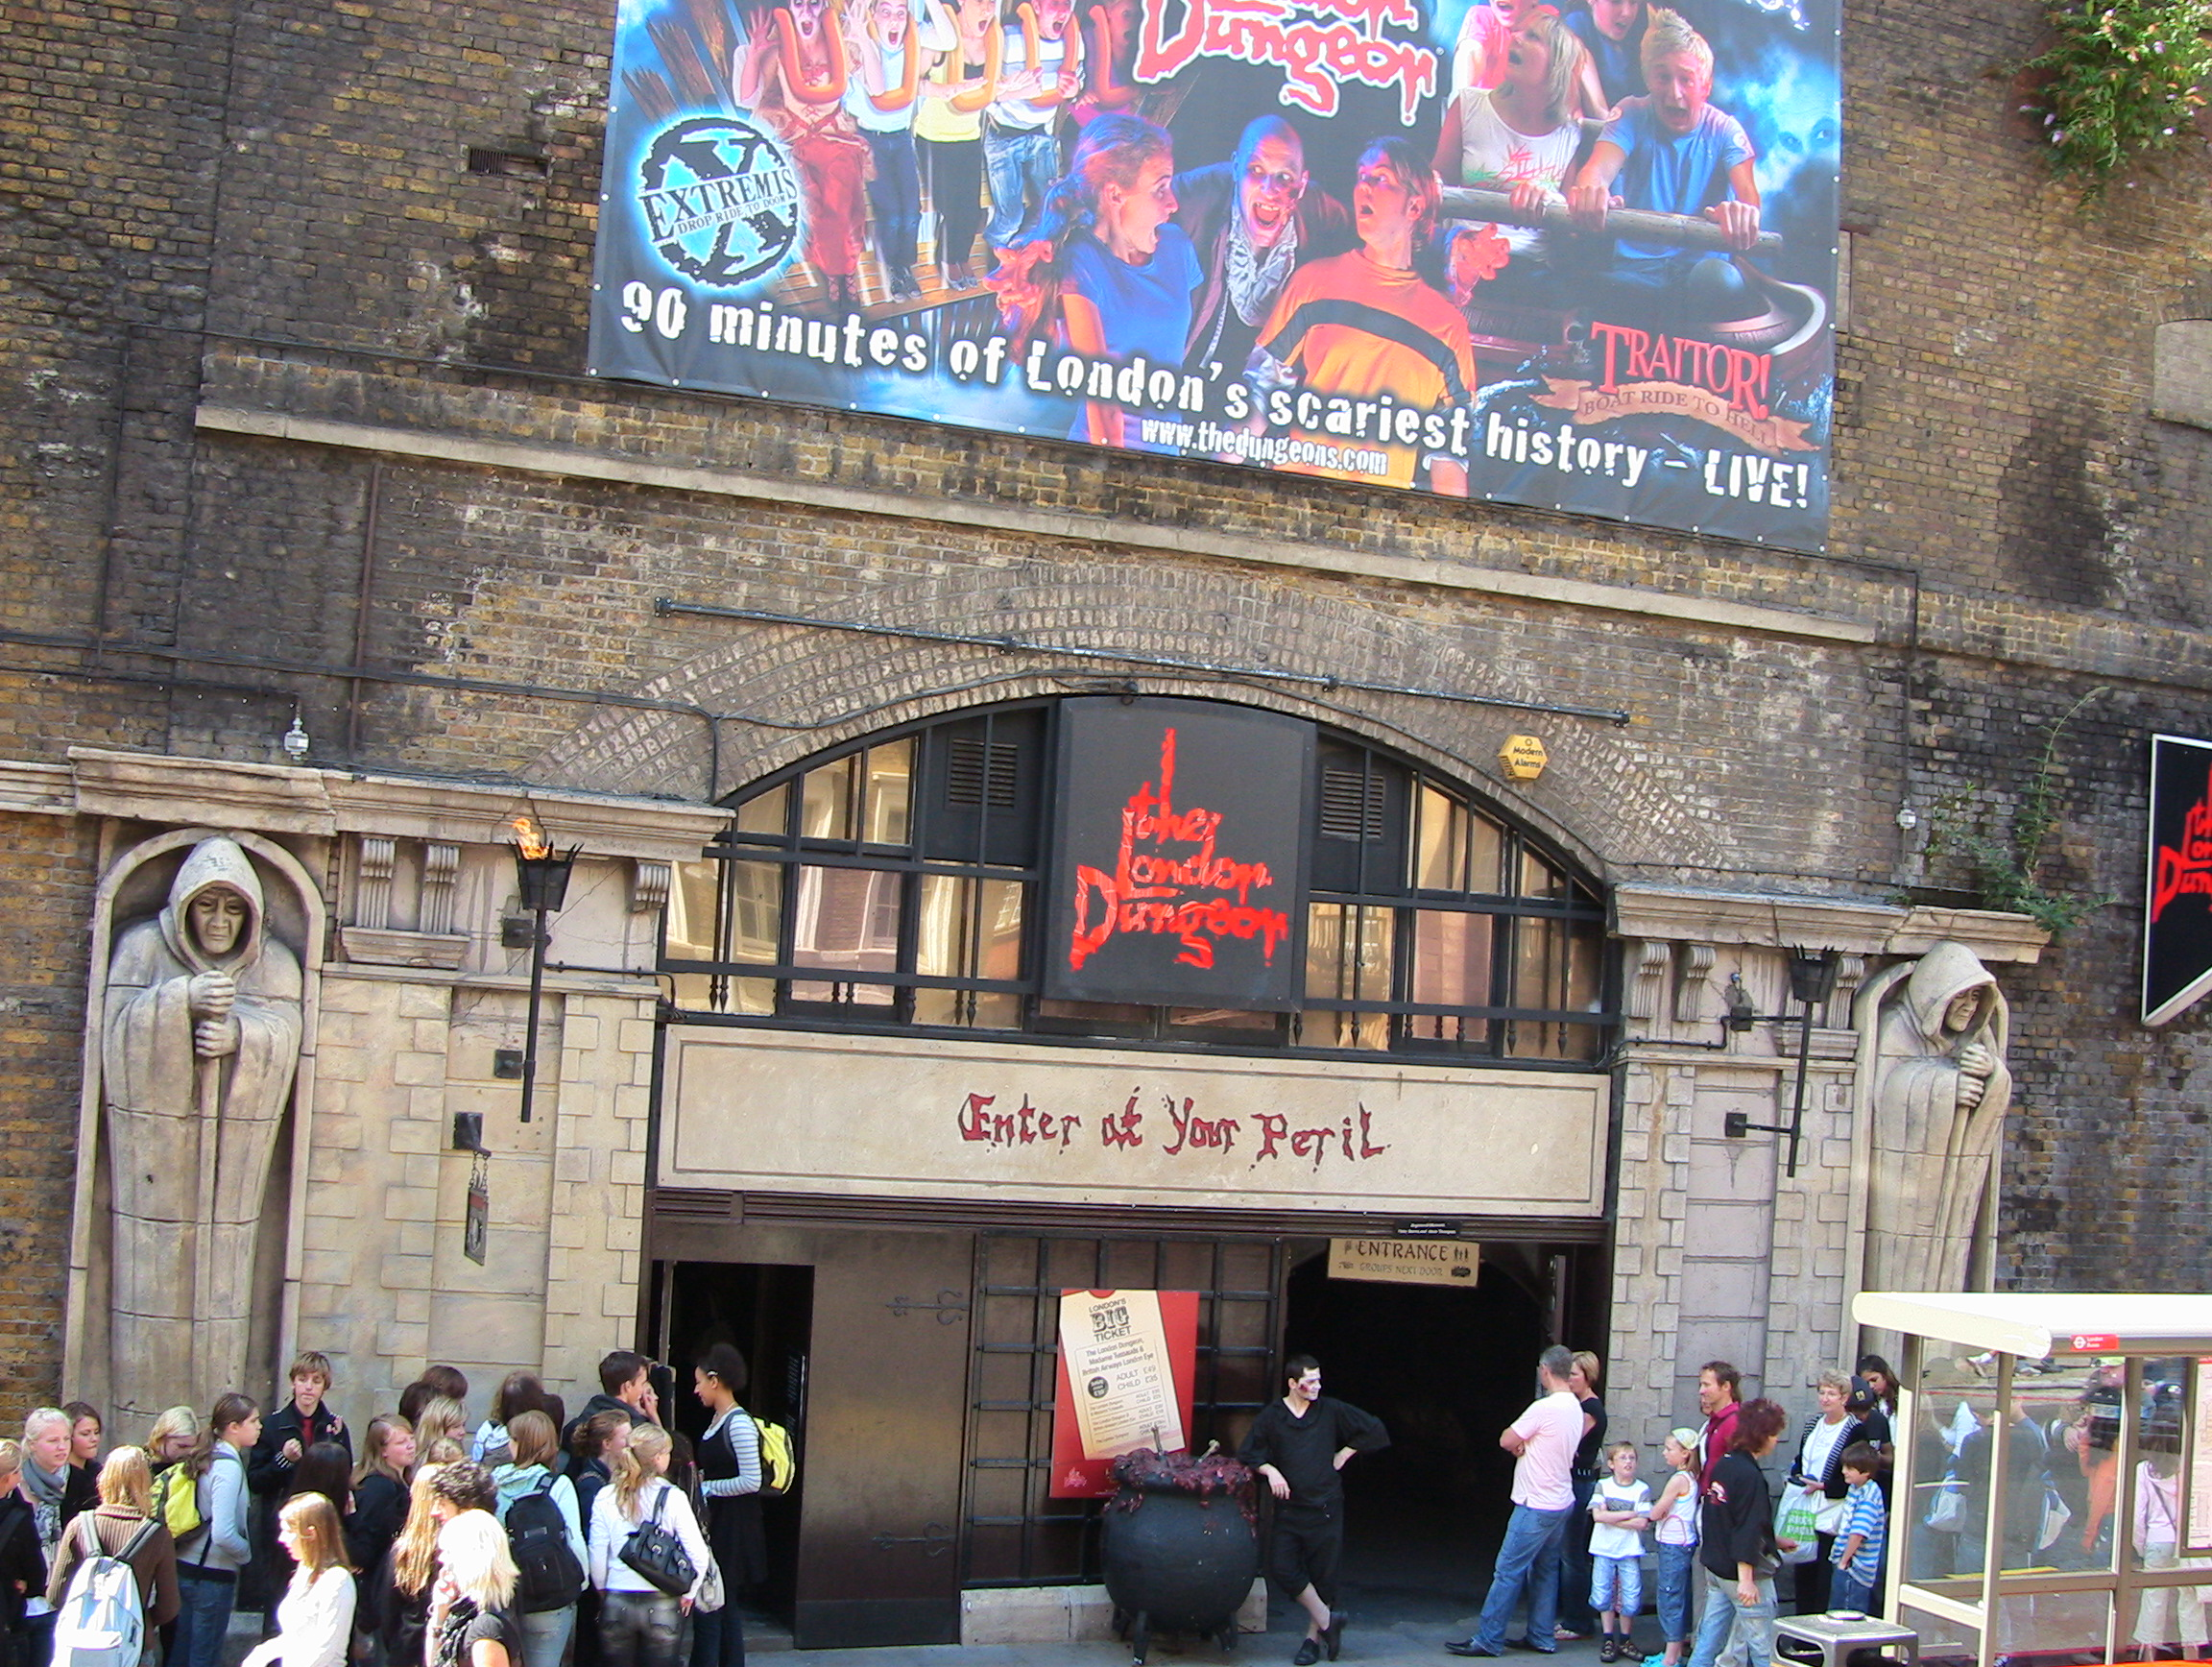 the london dungeon The london dungeon, london: see 9,316 reviews, articles, and 476 photos of the london dungeon, ranked no64 on tripadvisor among 433 attractions in london.